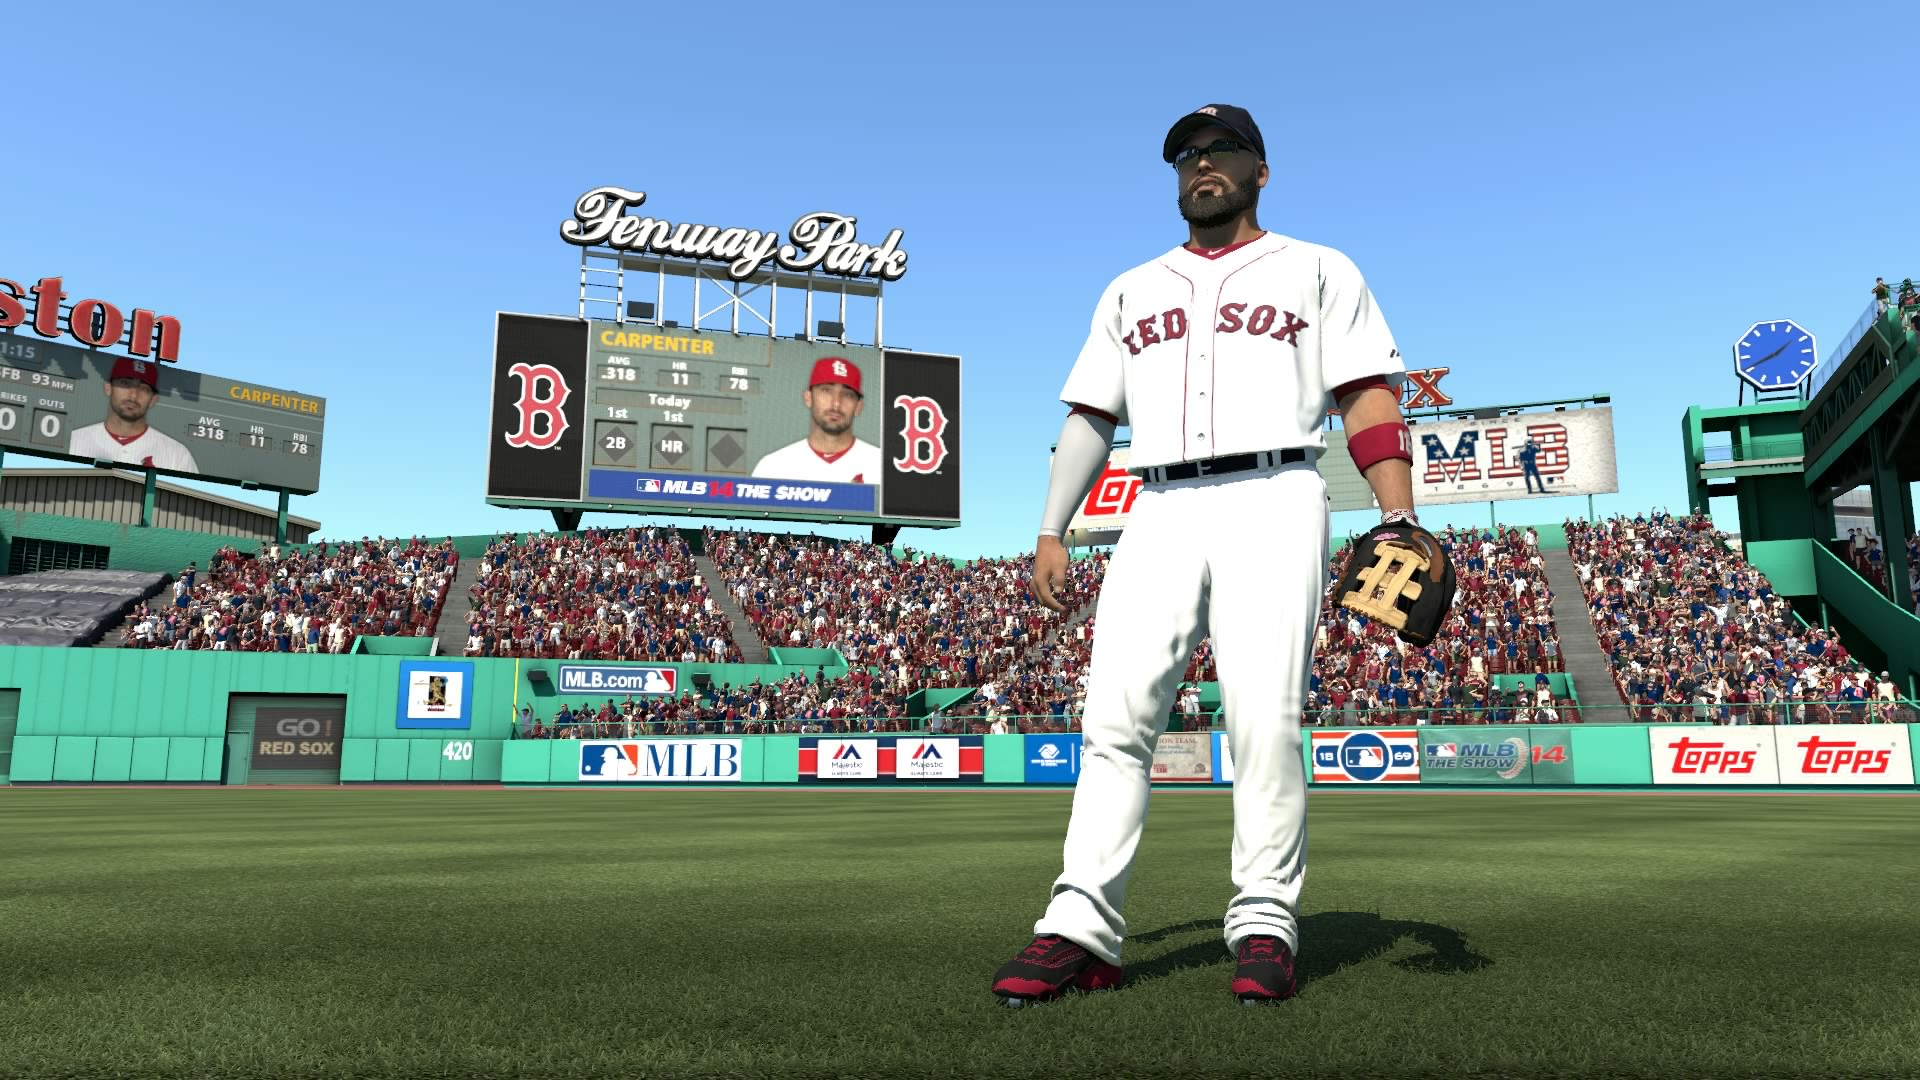 MLB 14 The Show comes home in May for PS4, April for PS3 and Vita